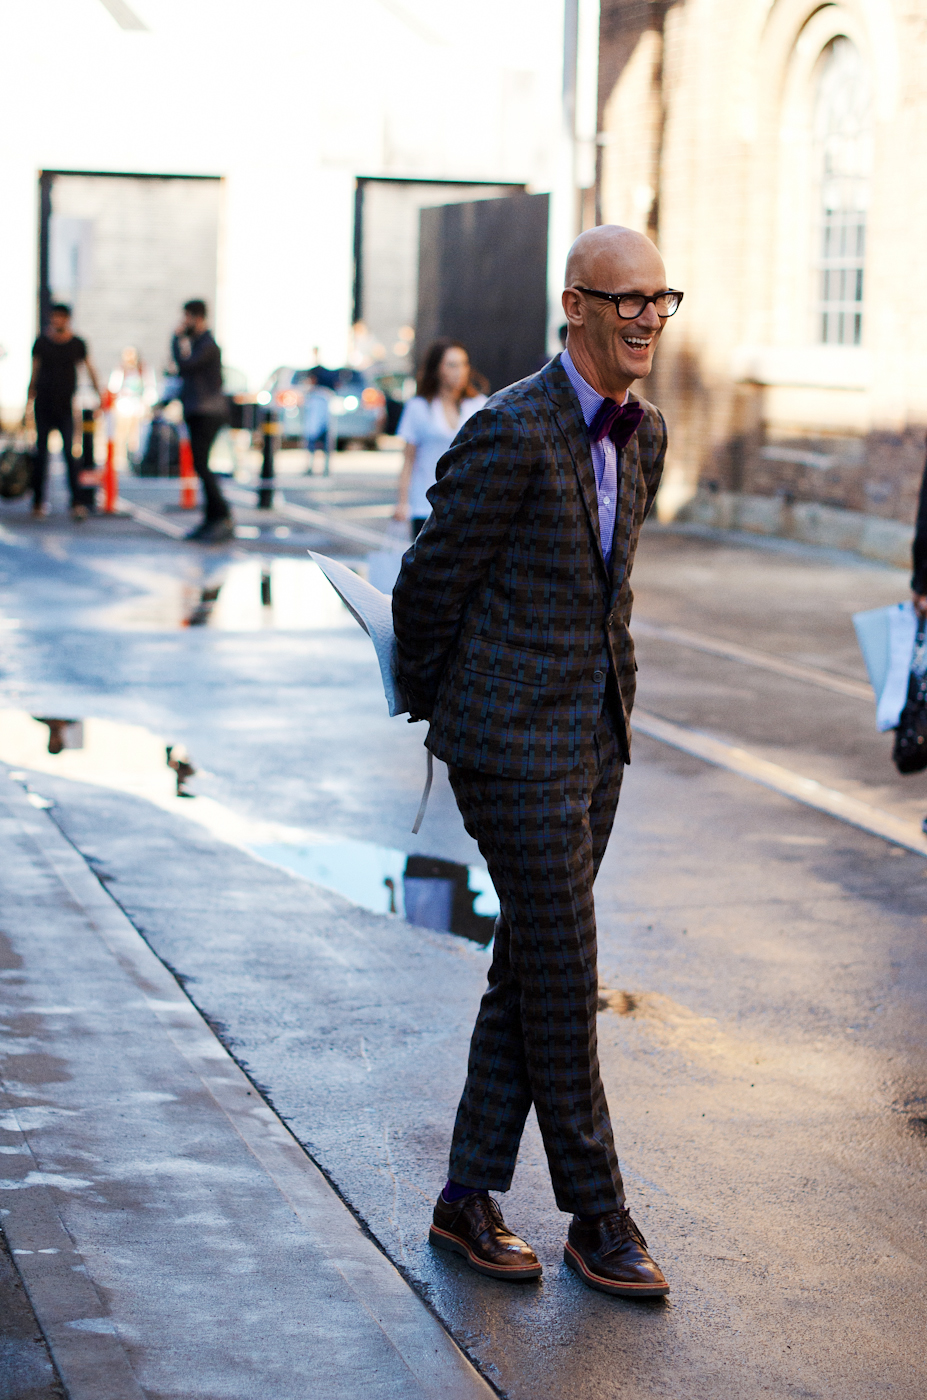 Patterned suit.